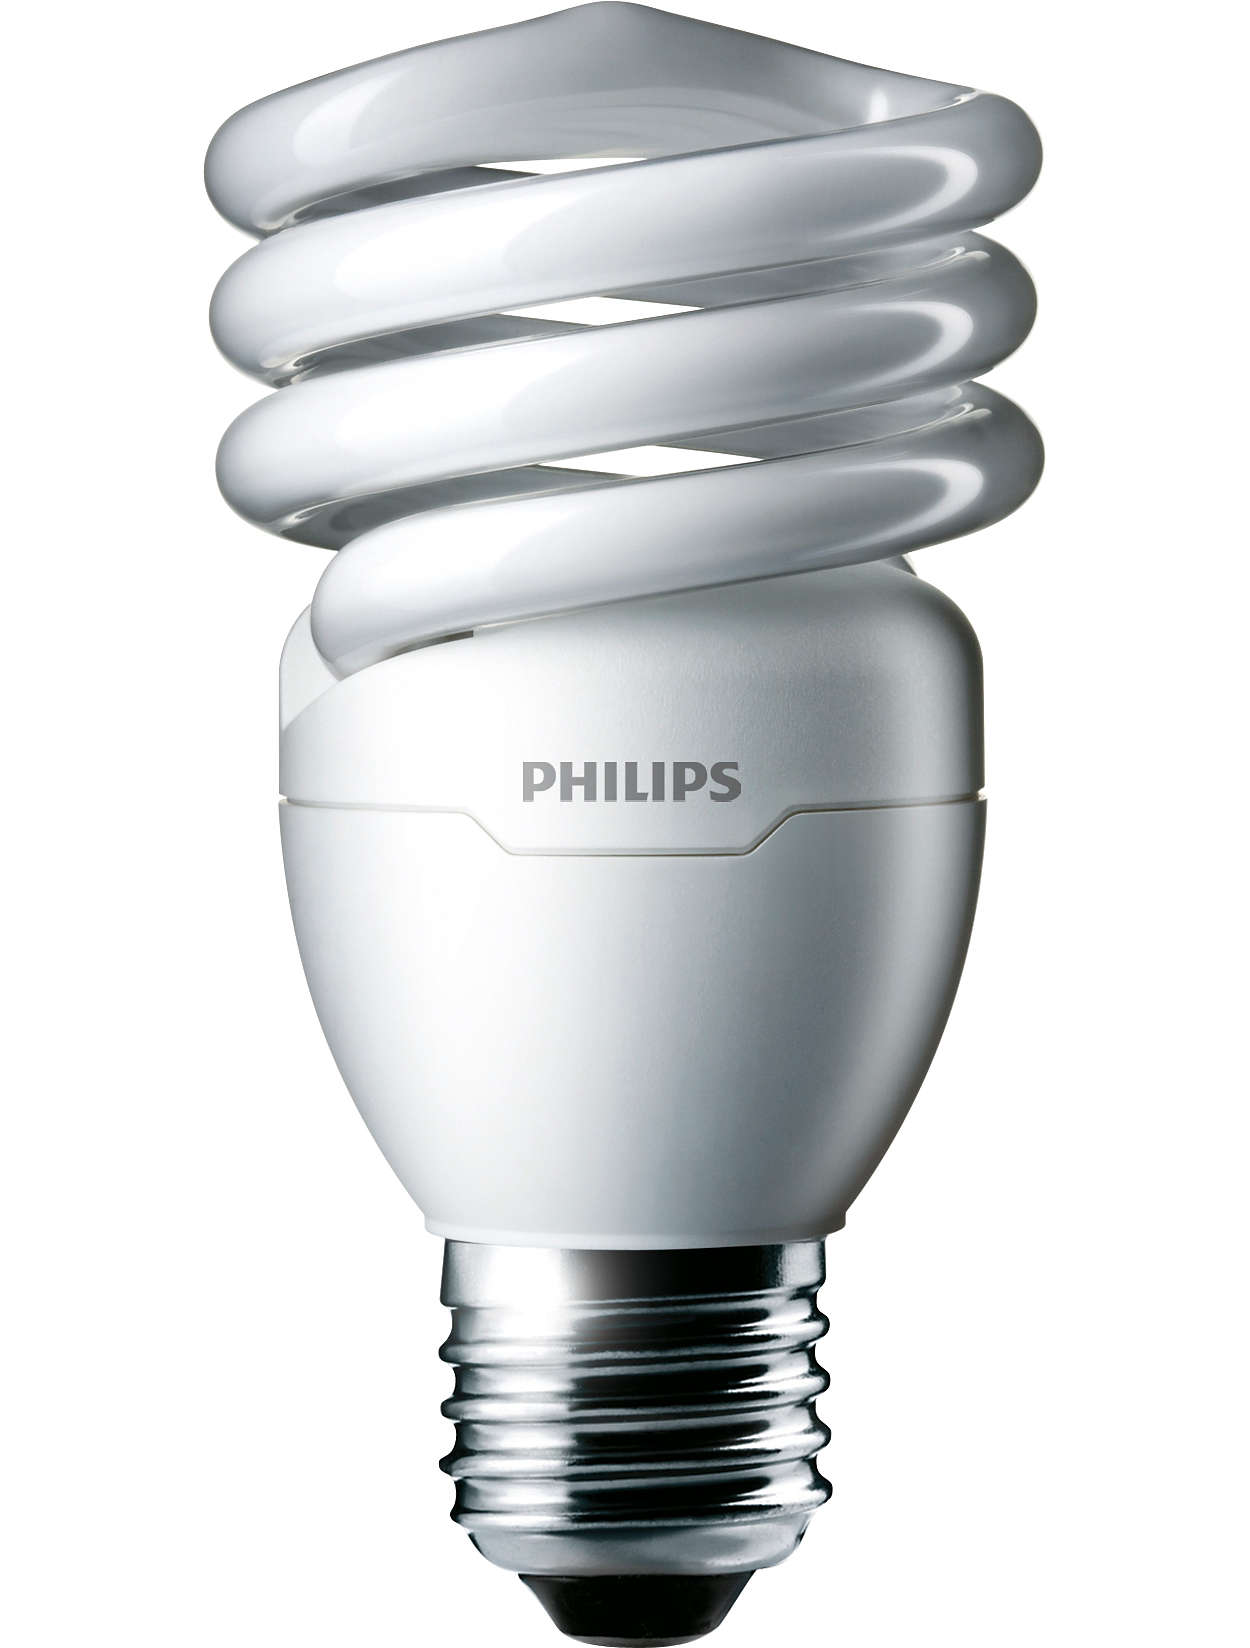 Energy Saver Compact Fluorescents - Going green never looked so good